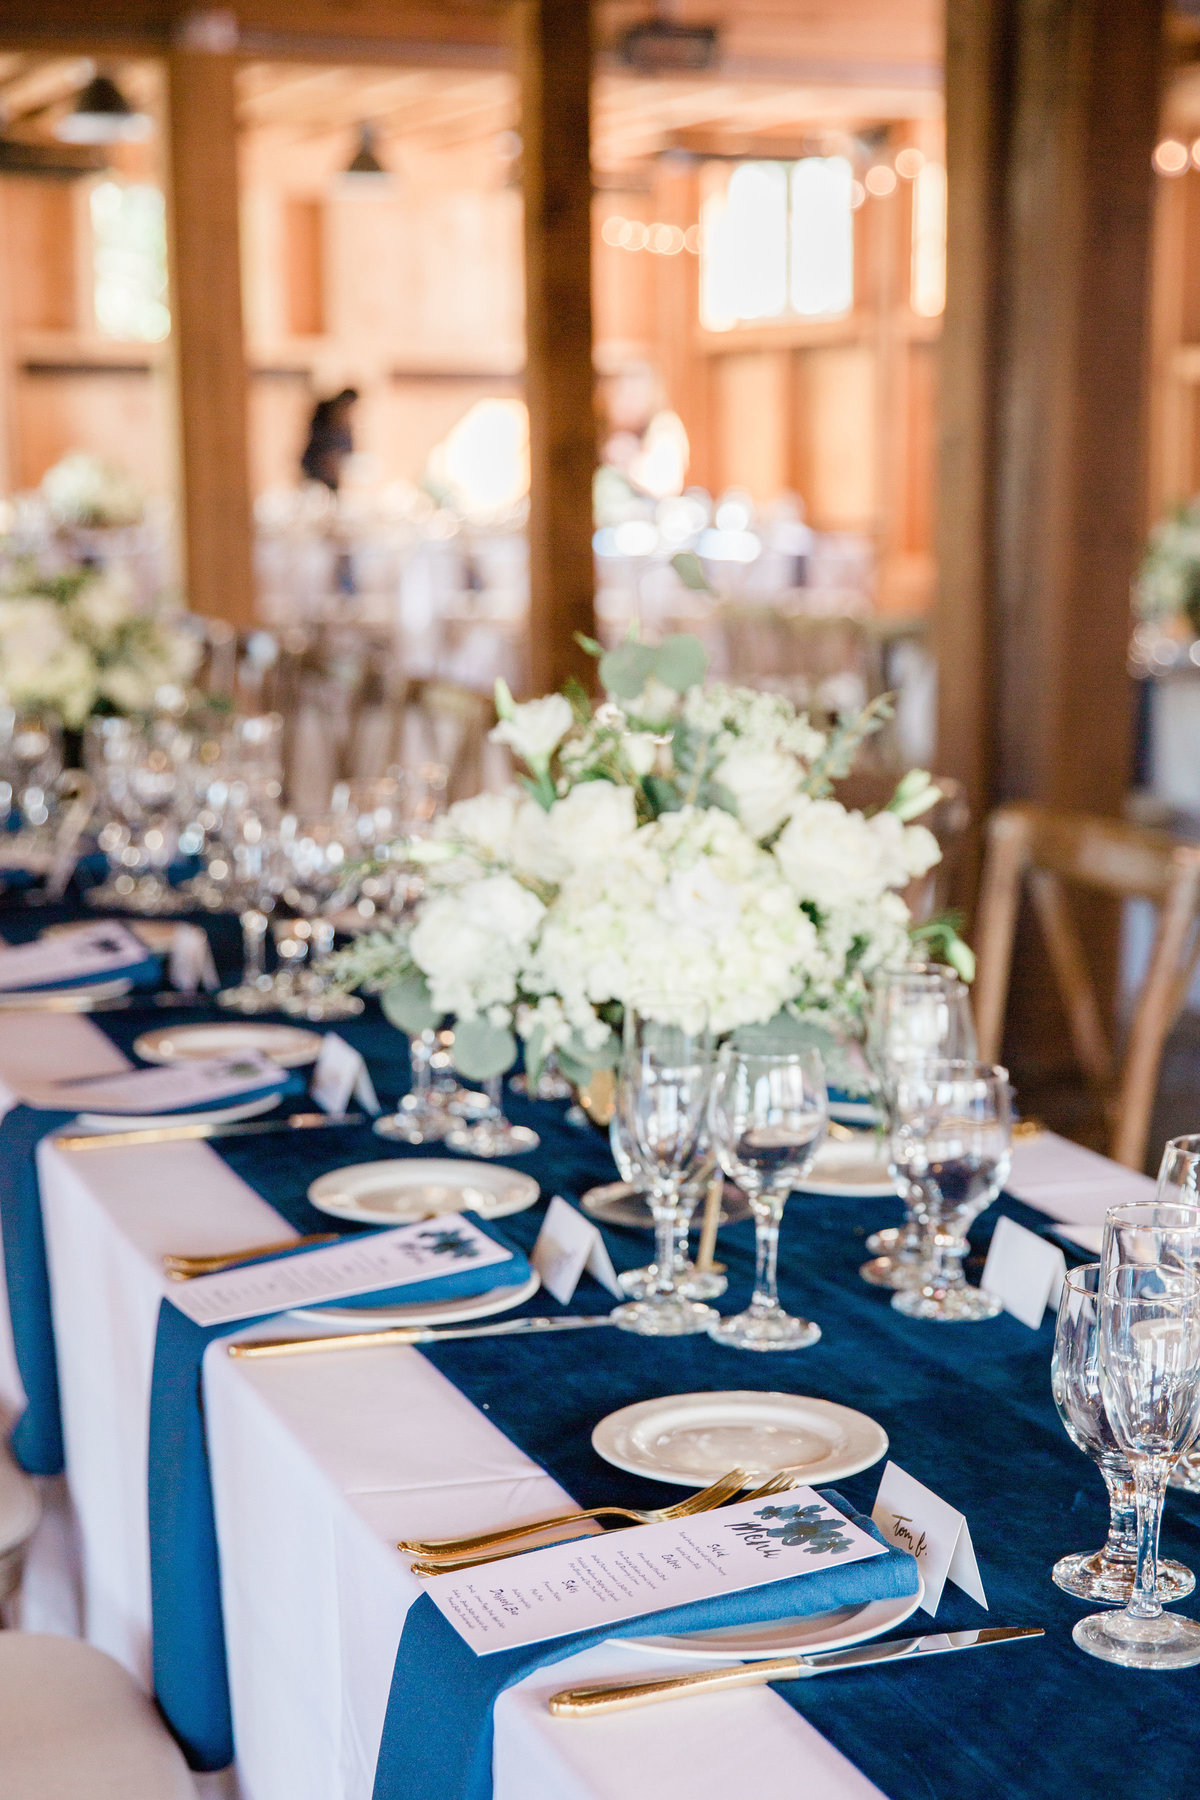 events-by-carianne-event-planner-wedding-planner-outdoor-wedding-mountain-top-wedding-anthropologie-wedding-new-england-boston-rhode-island-maine-new-hampshire-laura-rose-photography 64